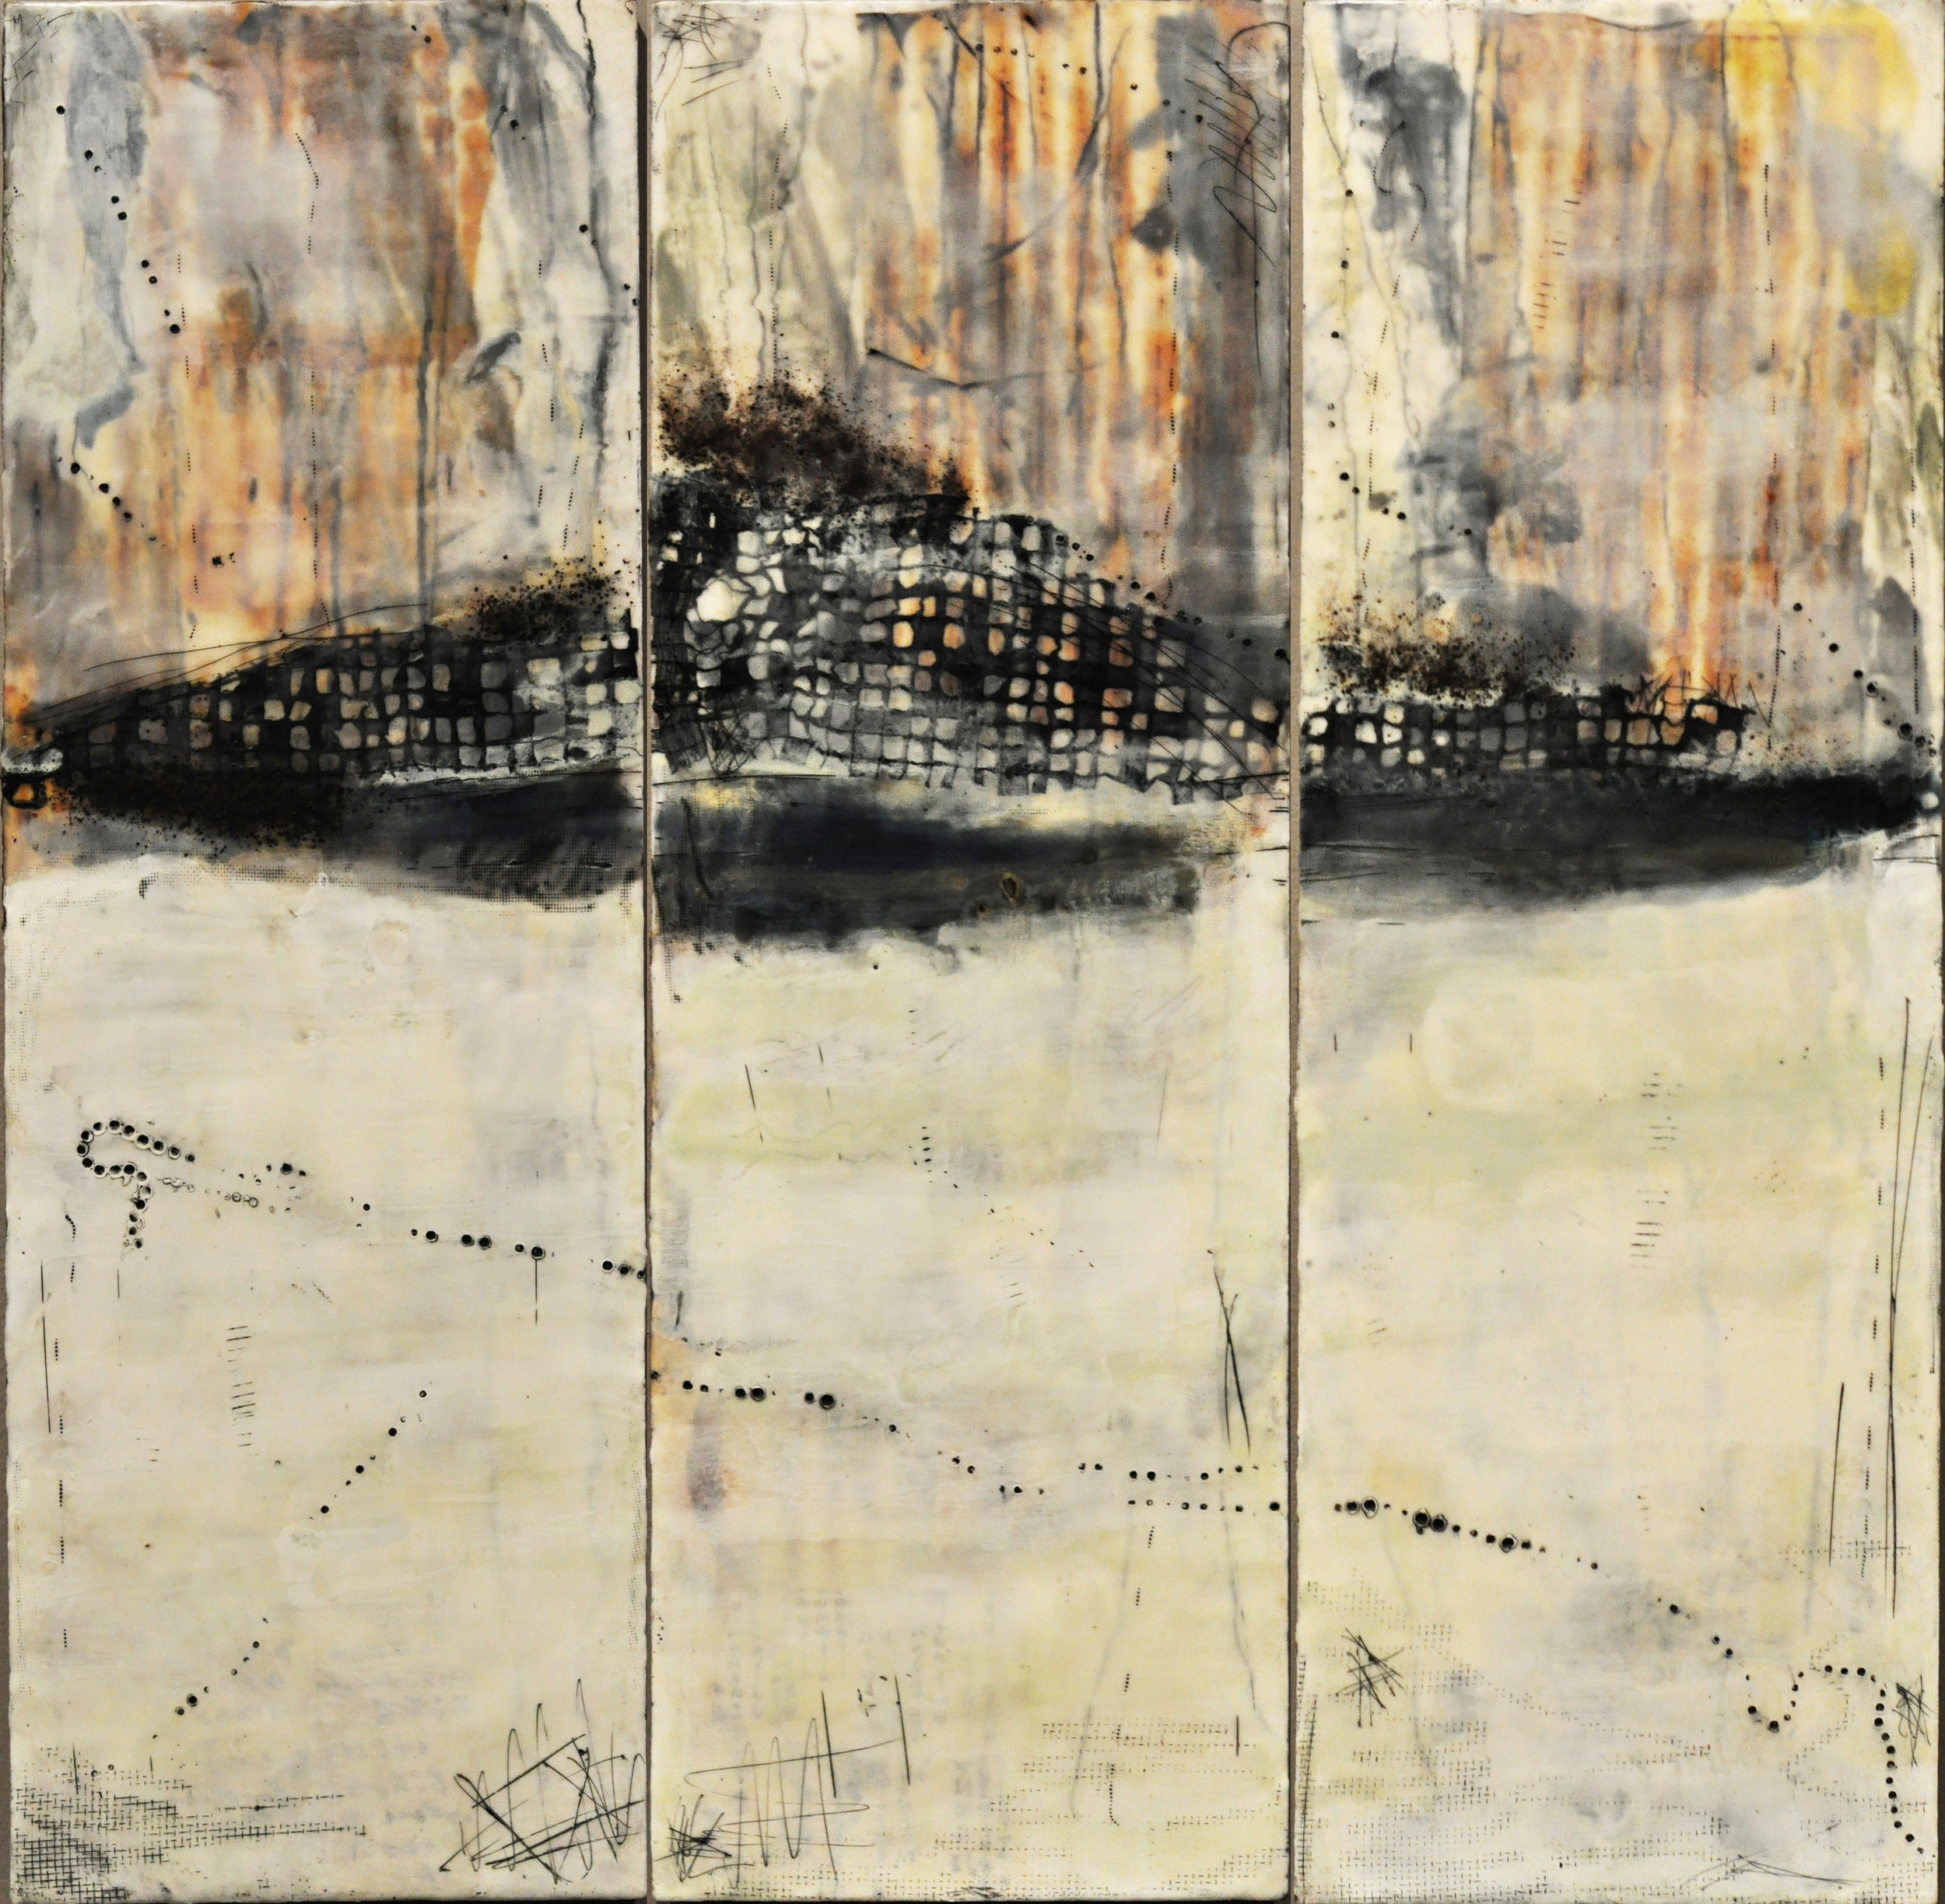 summiting   encaustic mixed media 18 x 36 inches, triptych 2017 SOLD